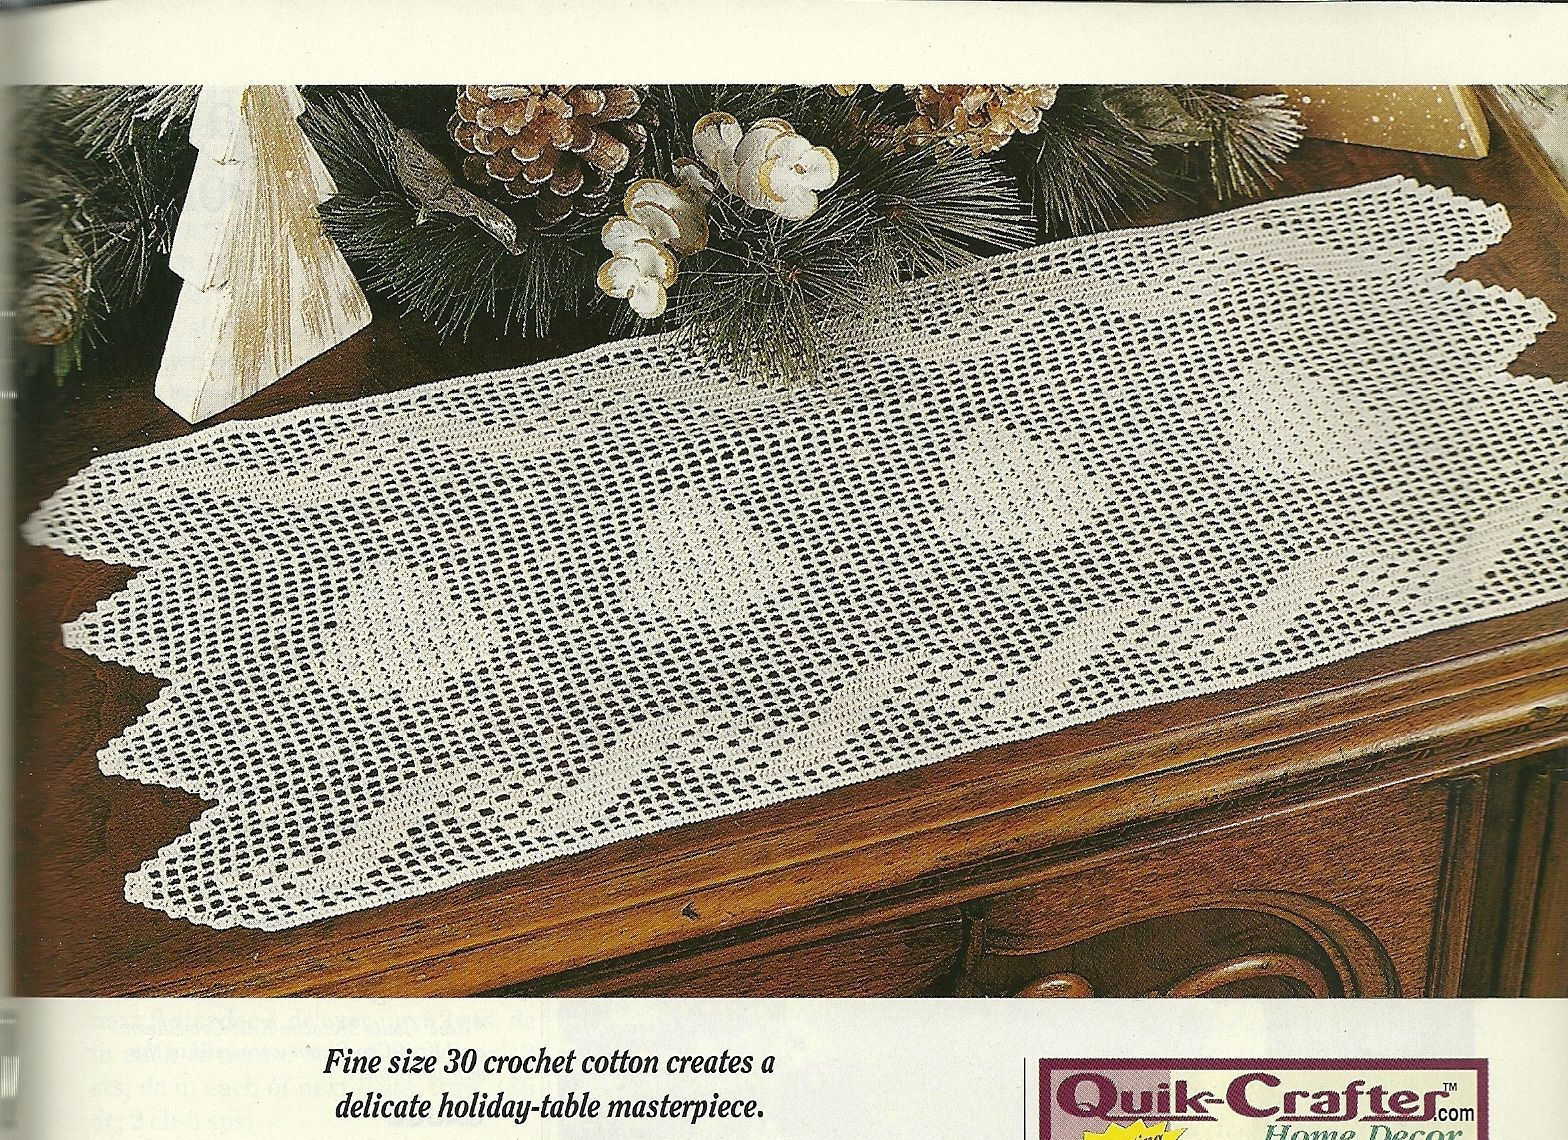 Crochet World Magazine December 2000 Vol. 23 No. 6